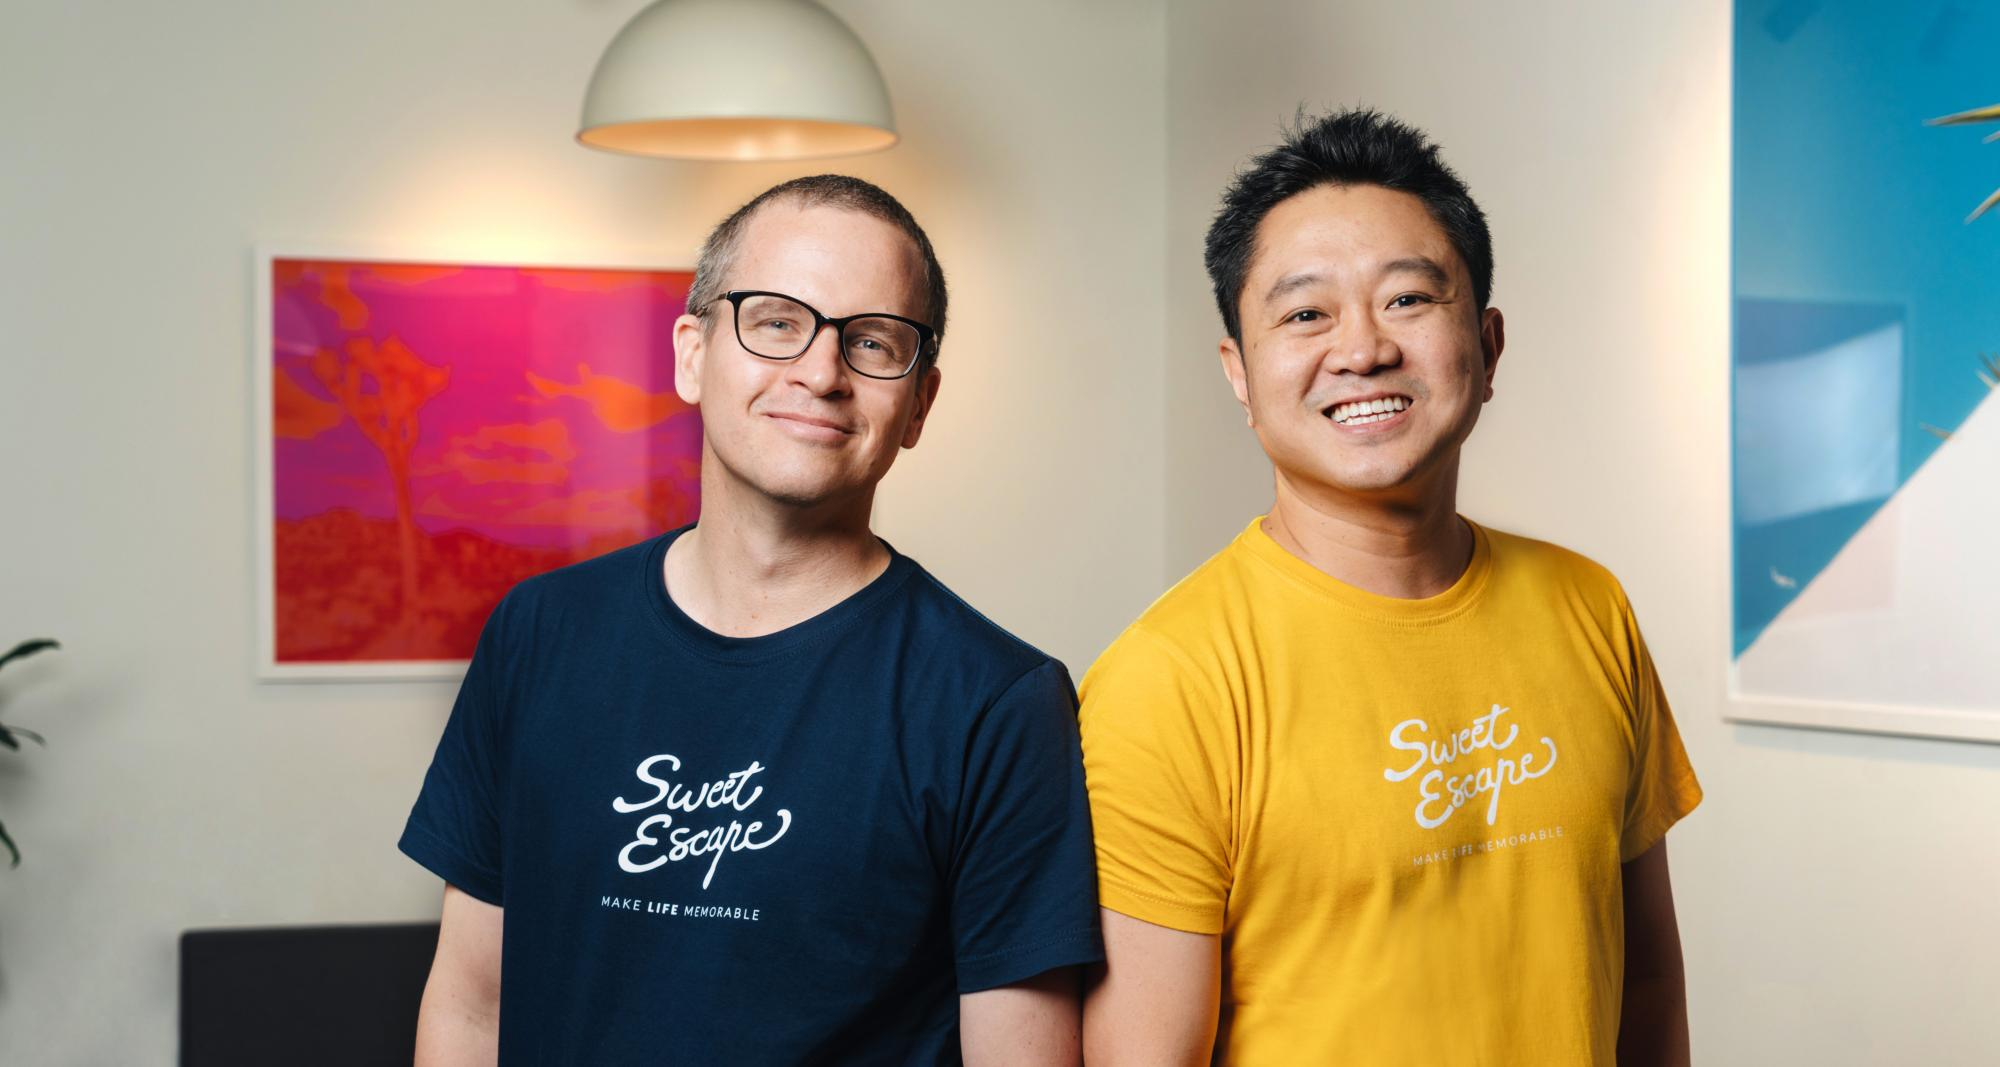 Sweet Escape, a platform for booking photographers, raises $6M